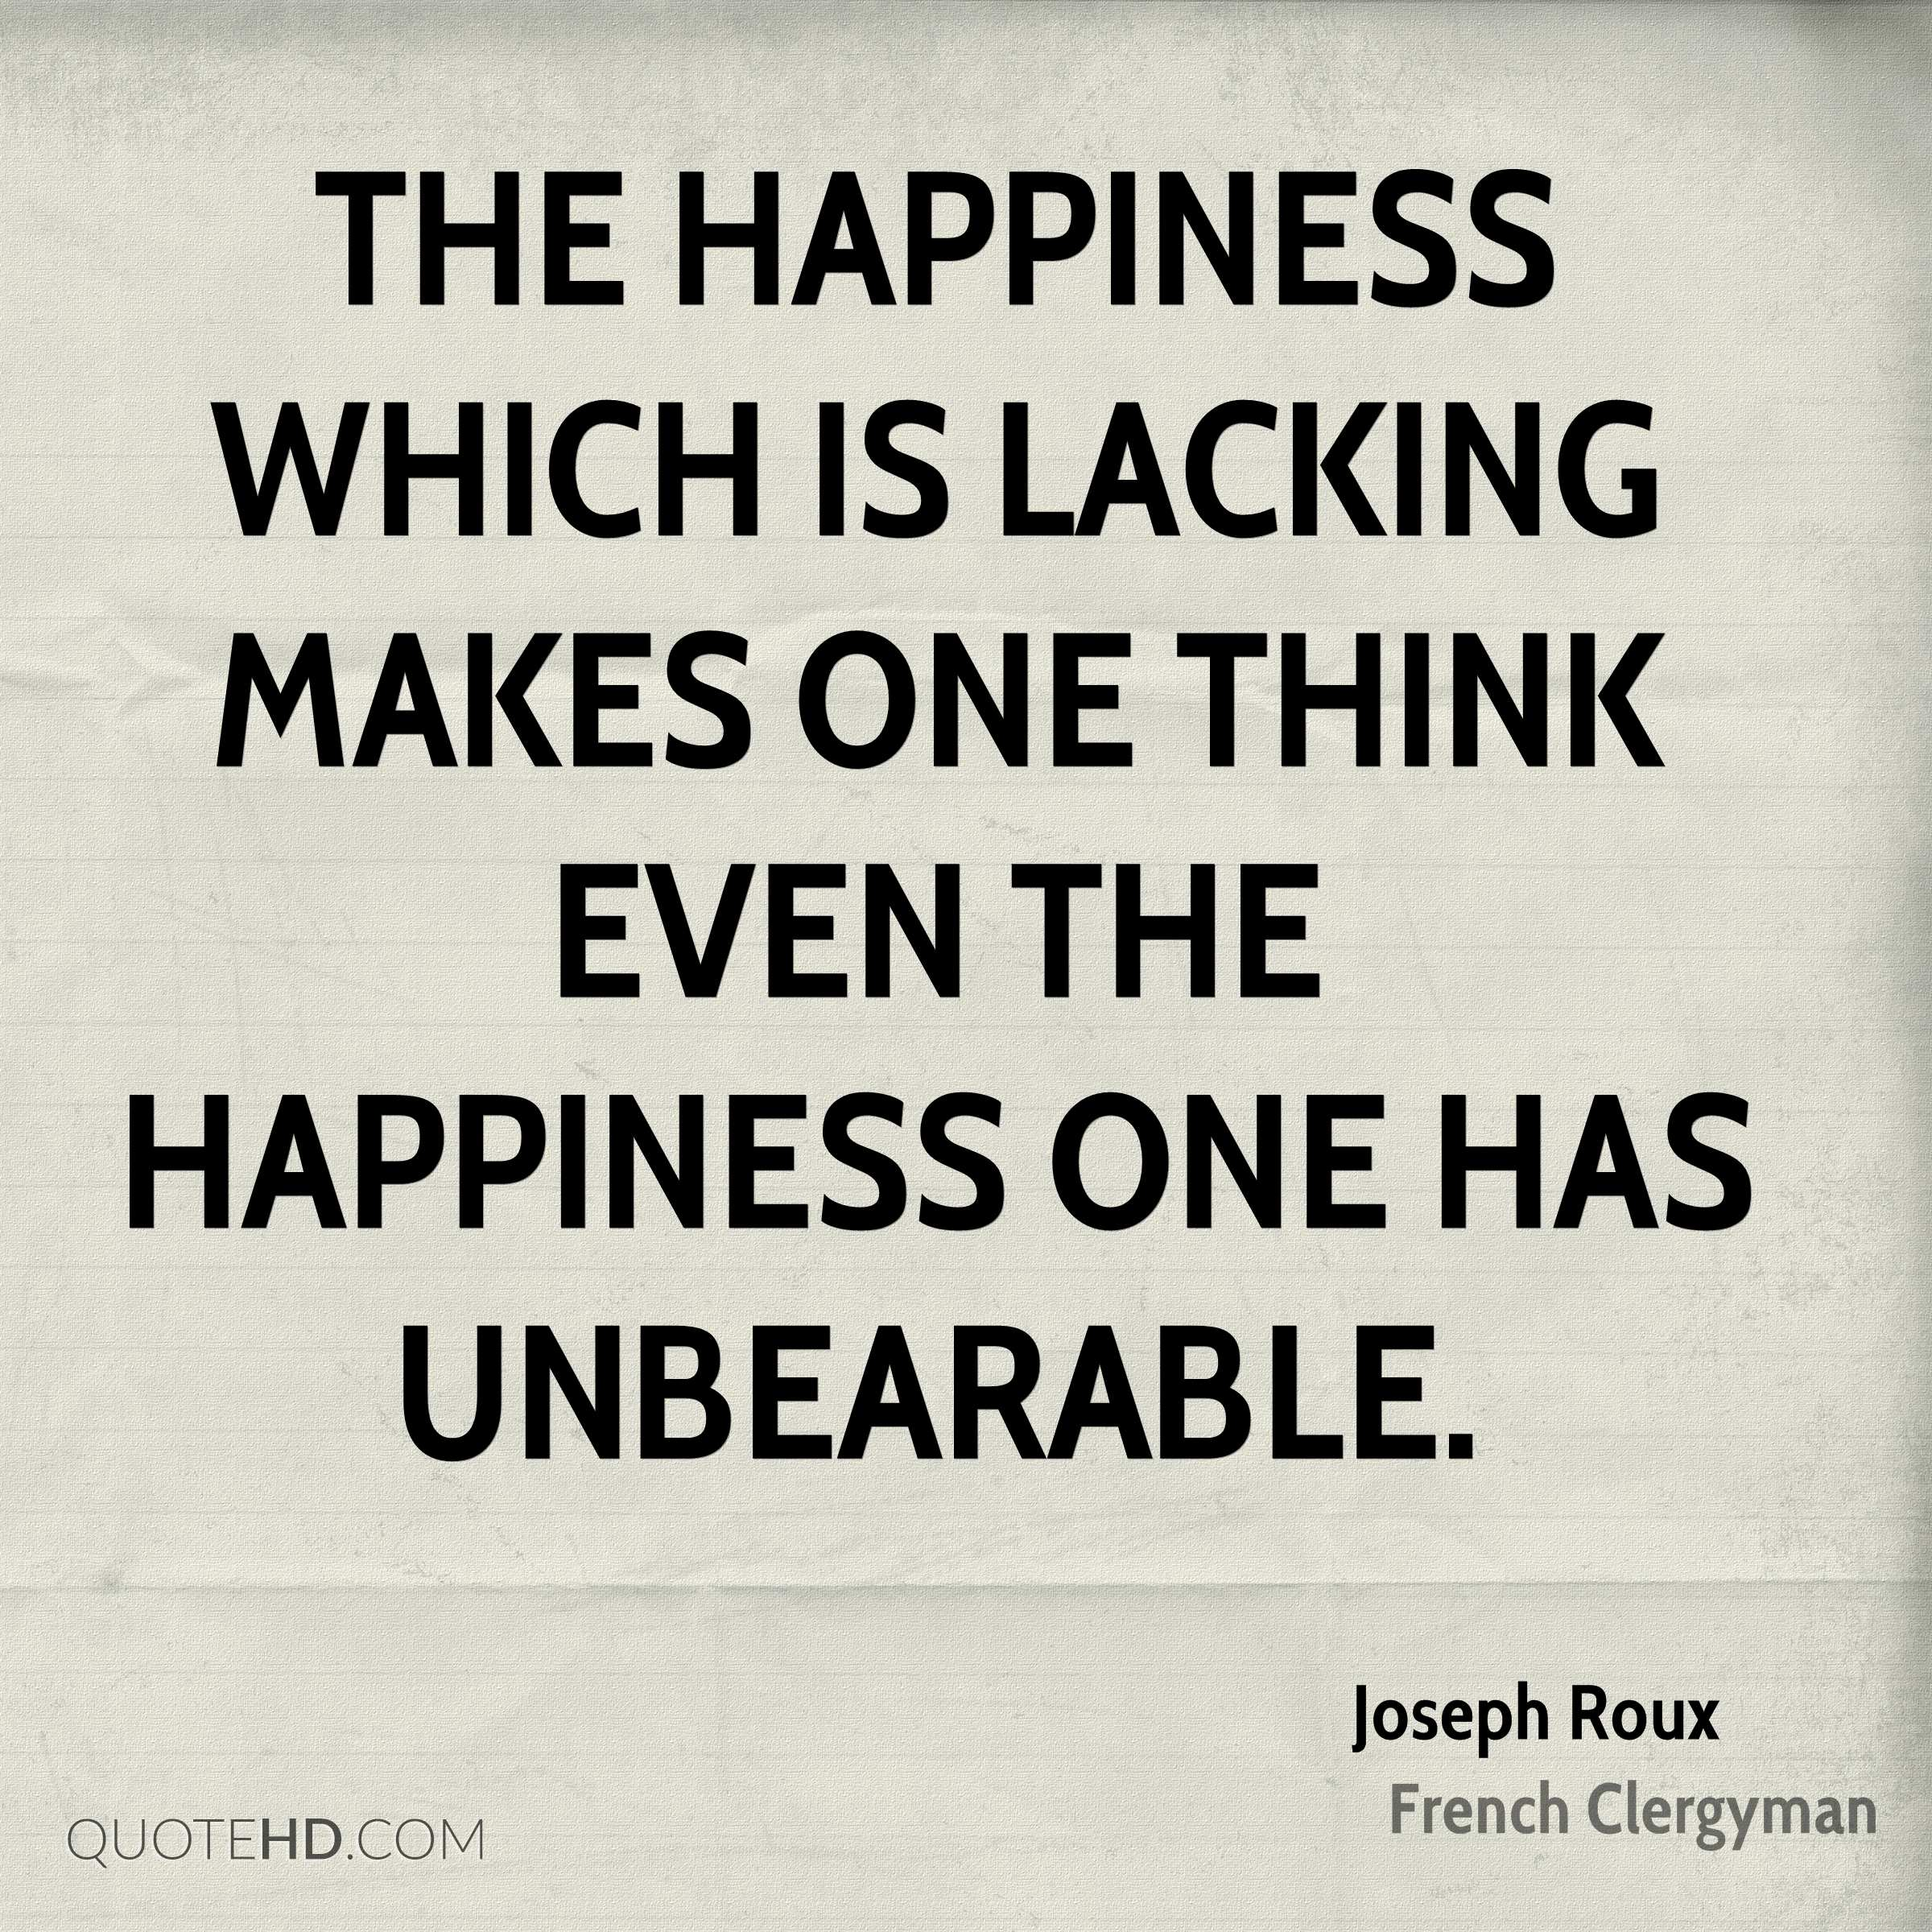 The happiness which is lacking makes one think even the happiness one has unbearable.